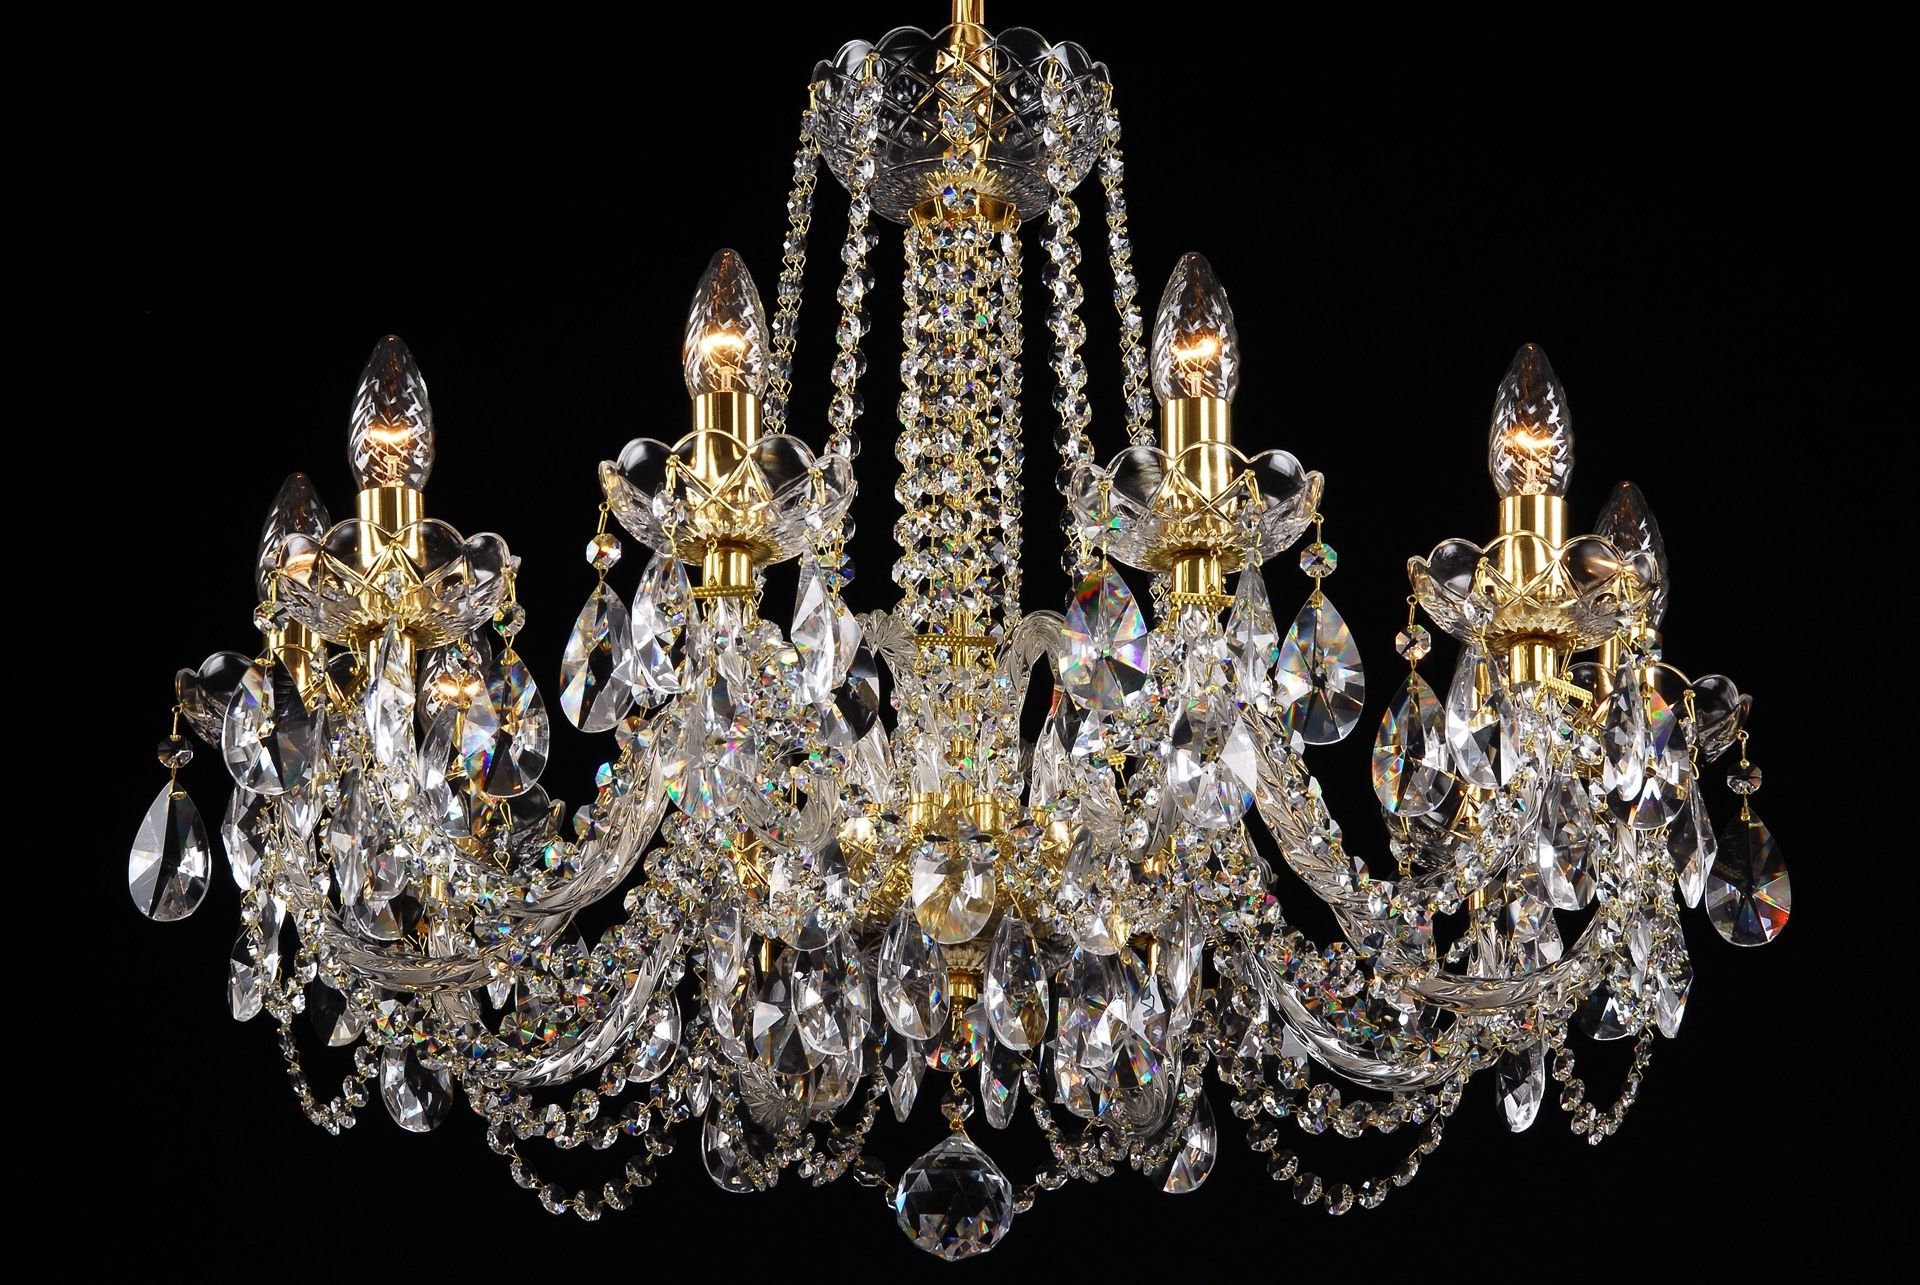 Coloured Glass Chandelier For Most Popular A Crystal Chandelier With Gold Coloured Metal Suitable For Interiors (View 5 of 20)